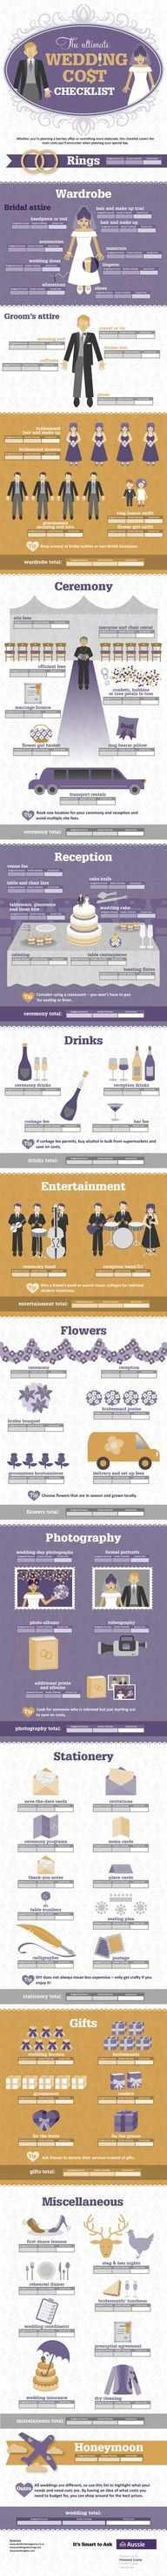 Organize your wedding costs/budget in a very creative and fun way!